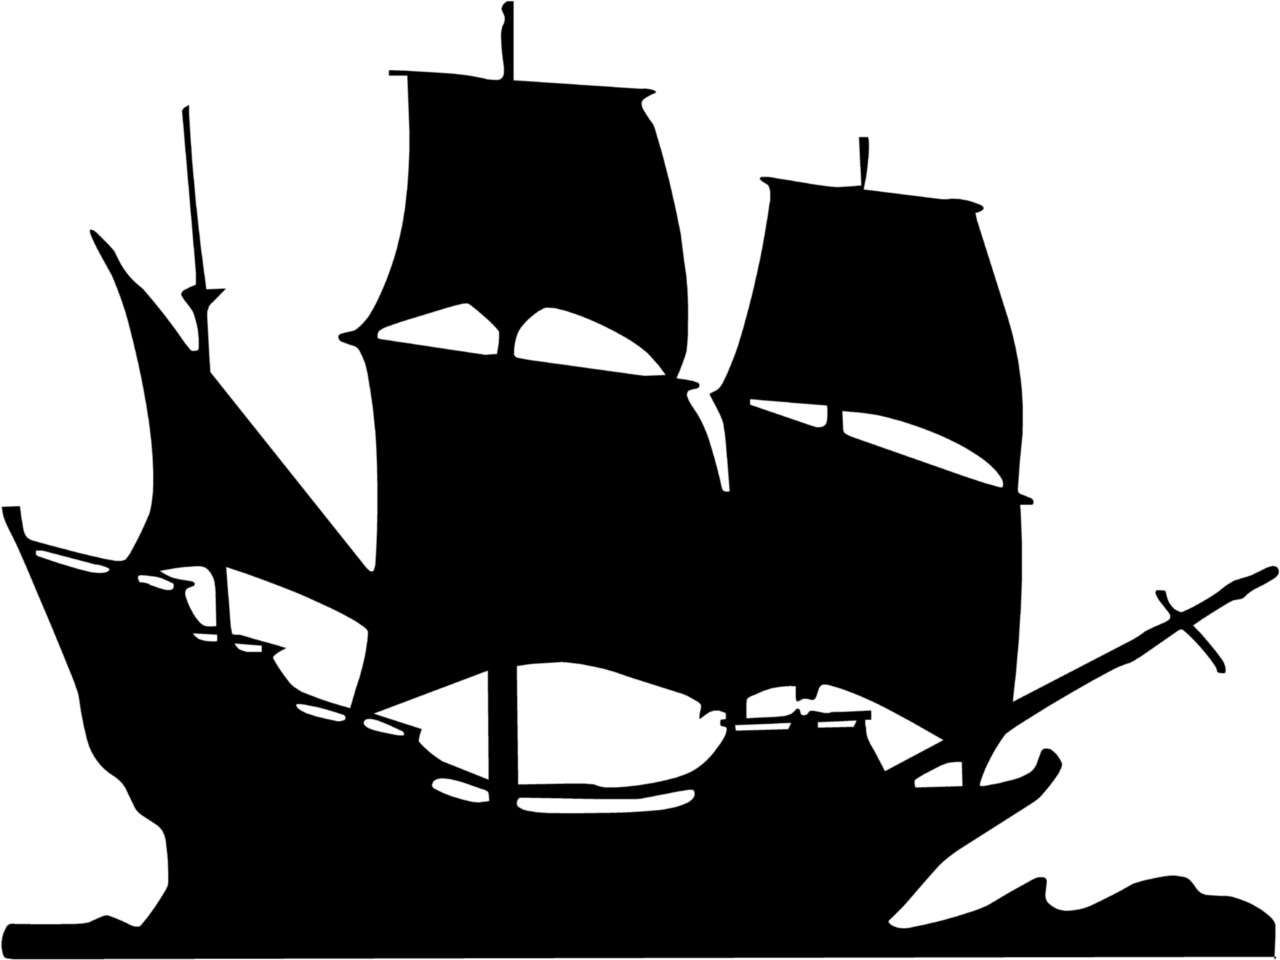 space ship clip art black and white - photo #21